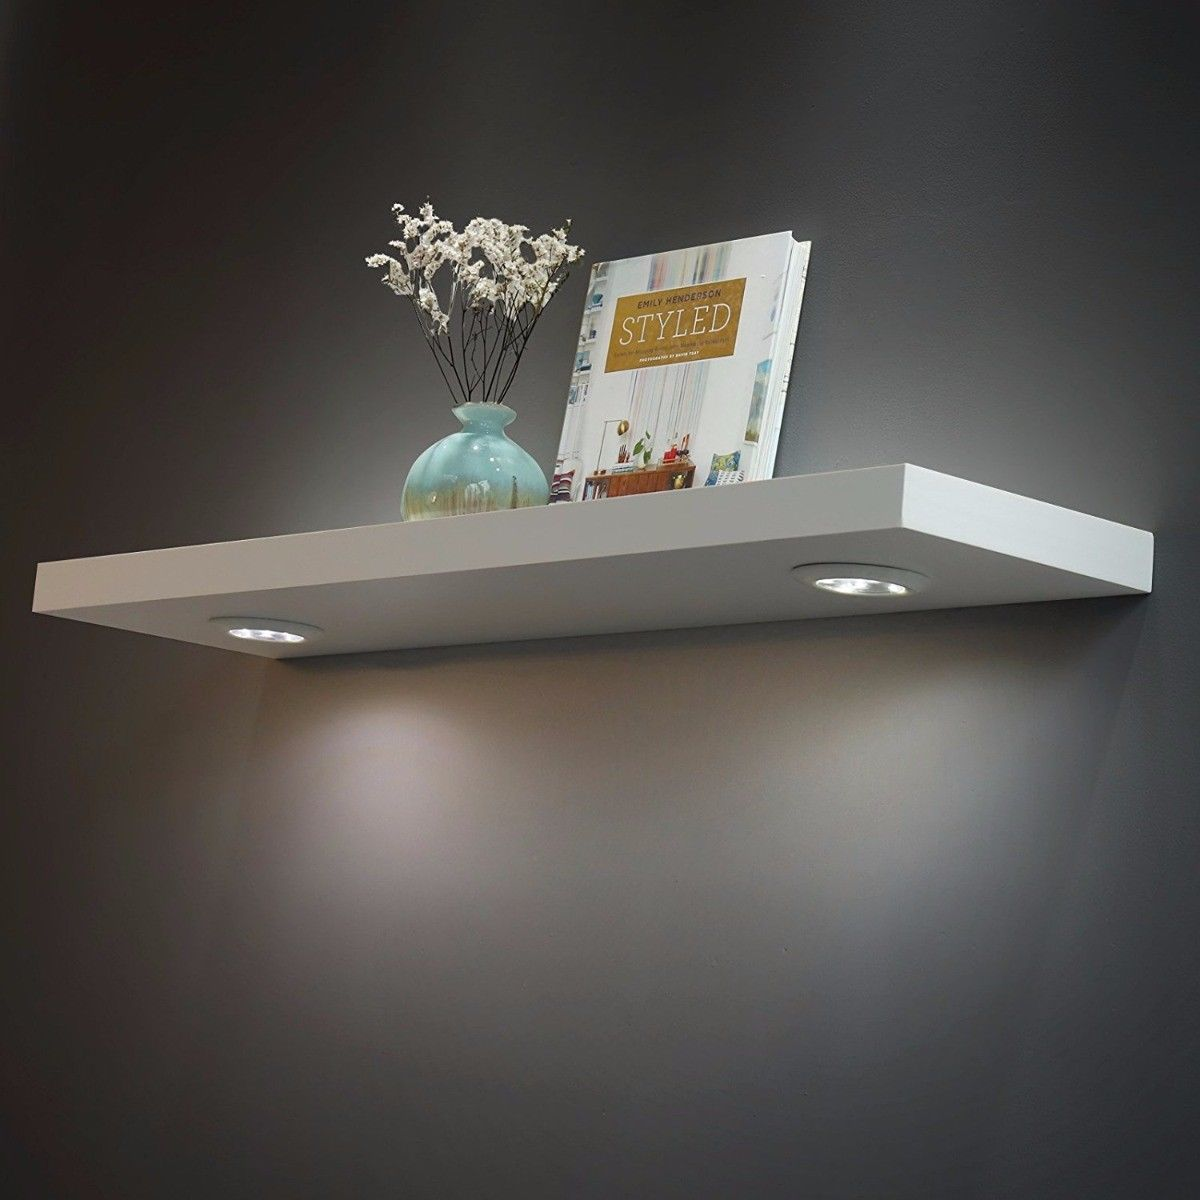 welland floating wall shelf with led lights white shelves lighting computer desk elbow elastilon strong reviews vintage coat hanger ledge moulding granite island brackets ikea